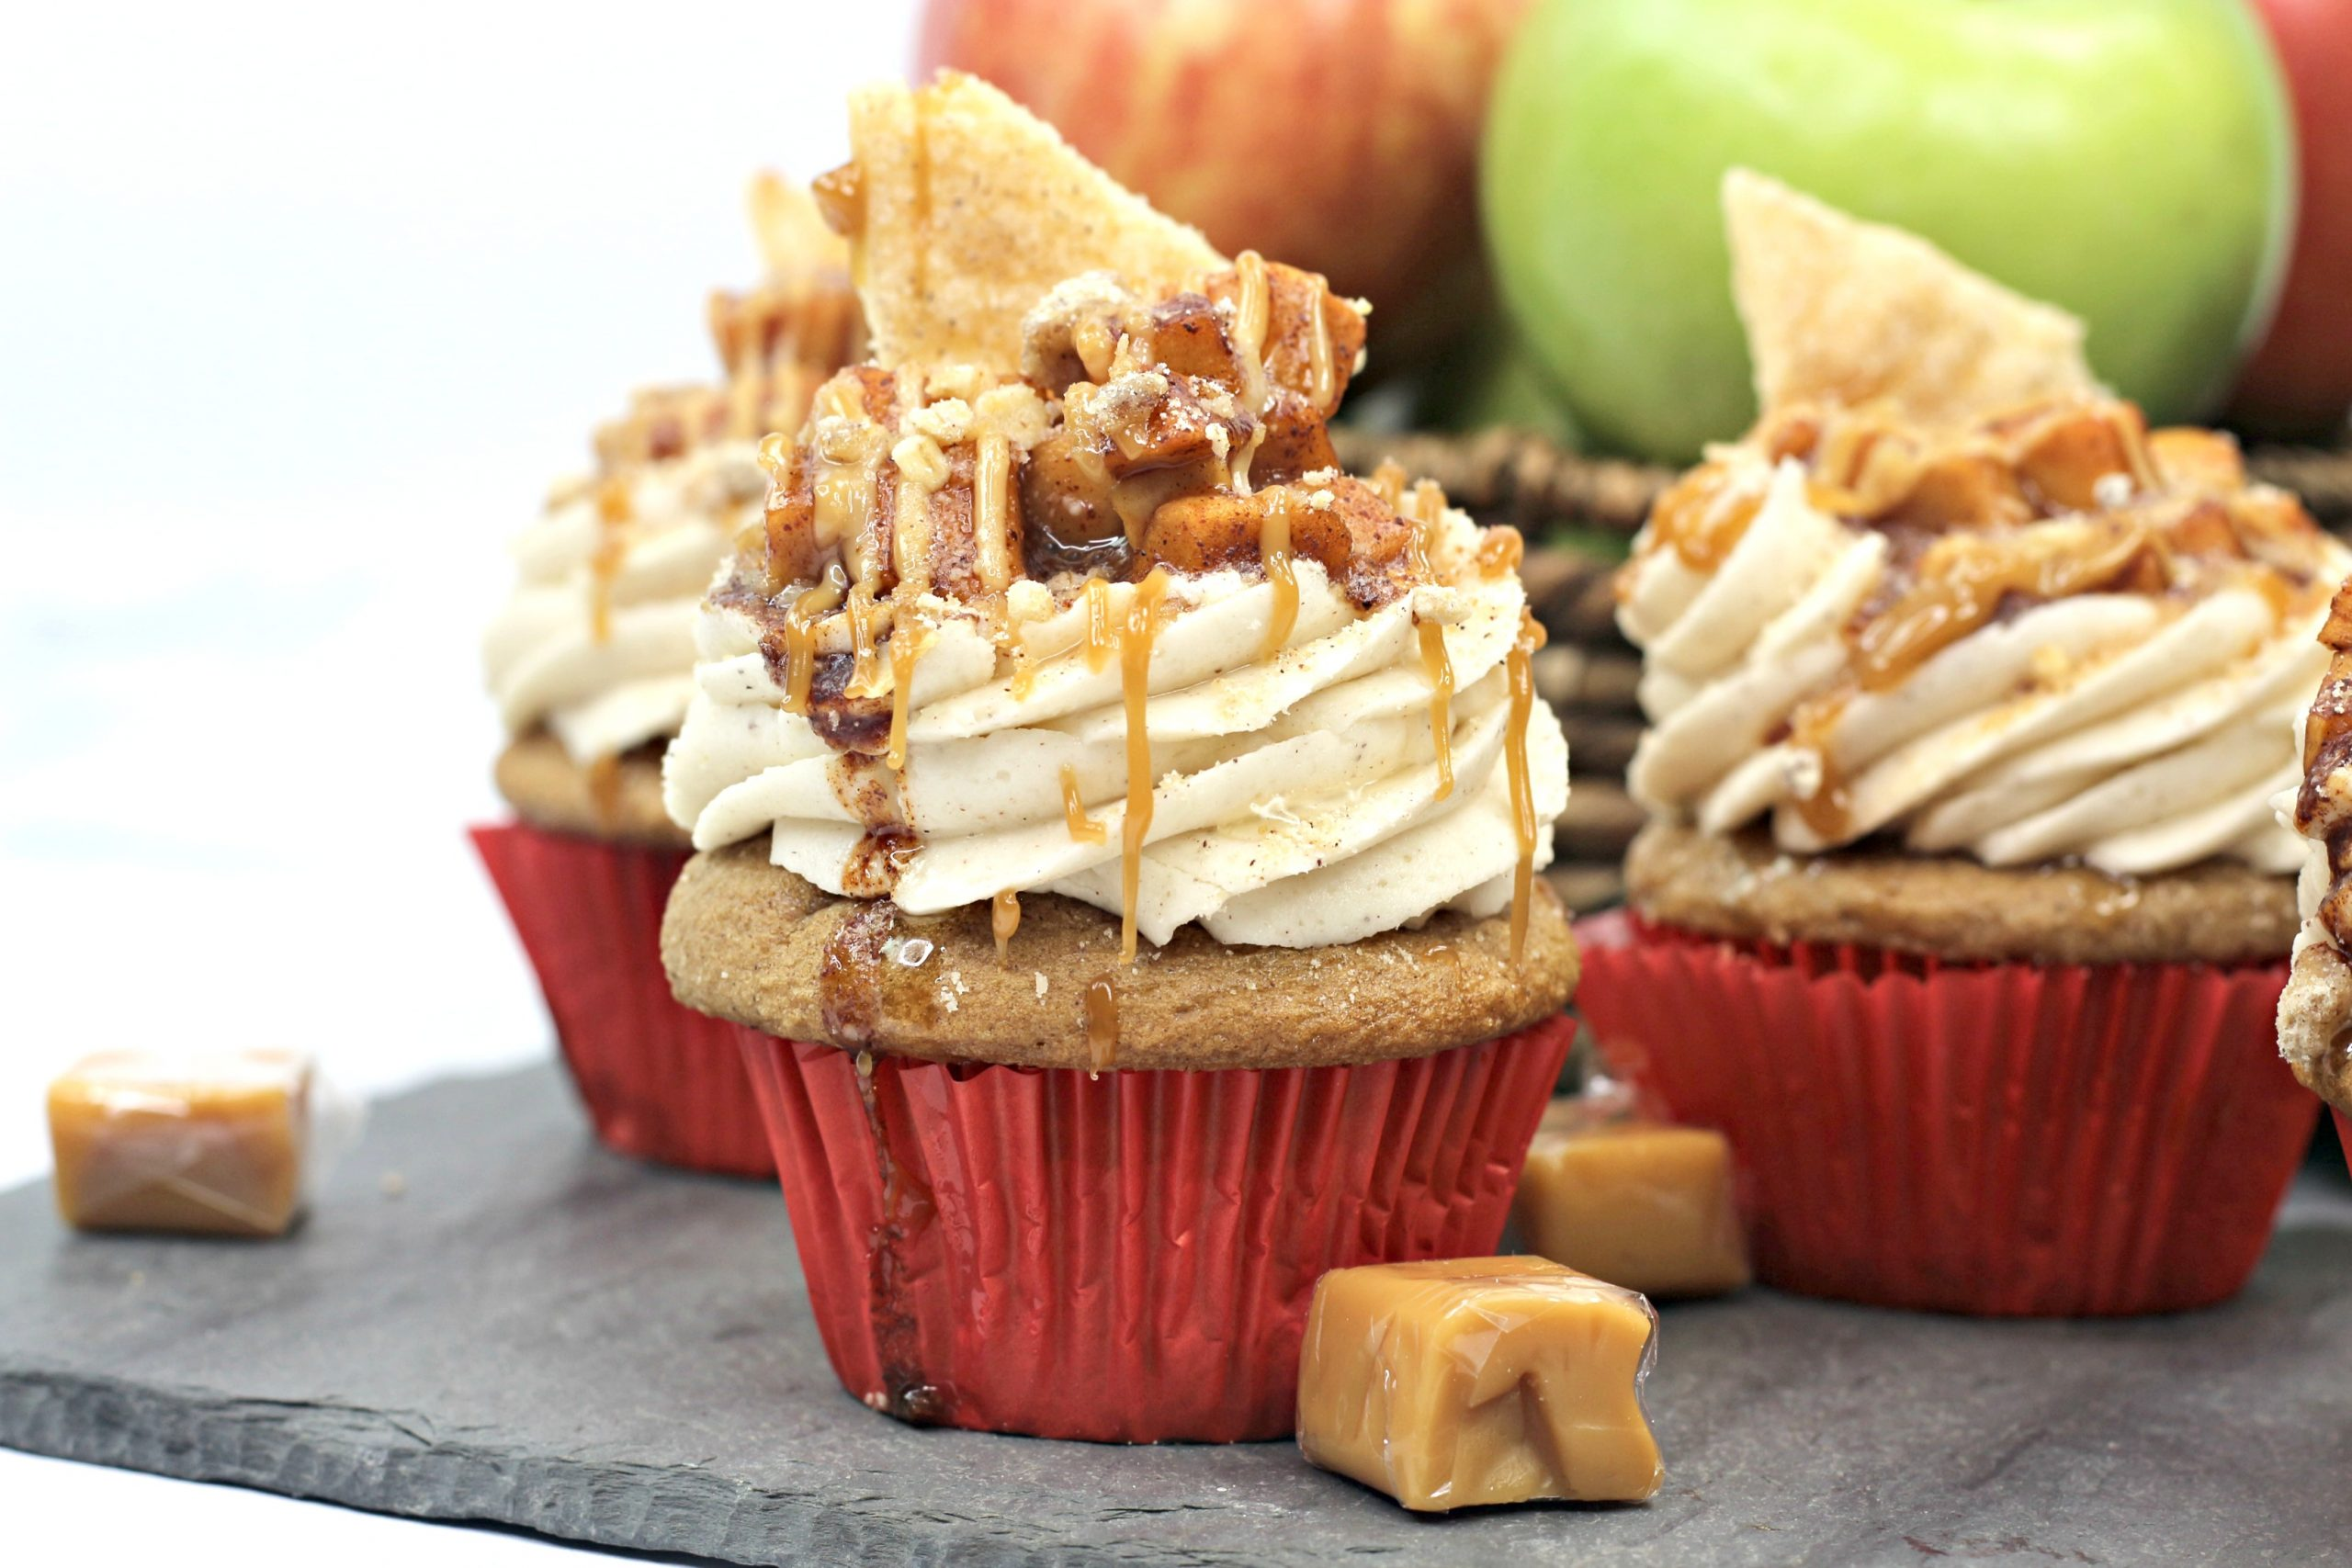 Apple Pie Cupcakes with a basket of apples behind them.